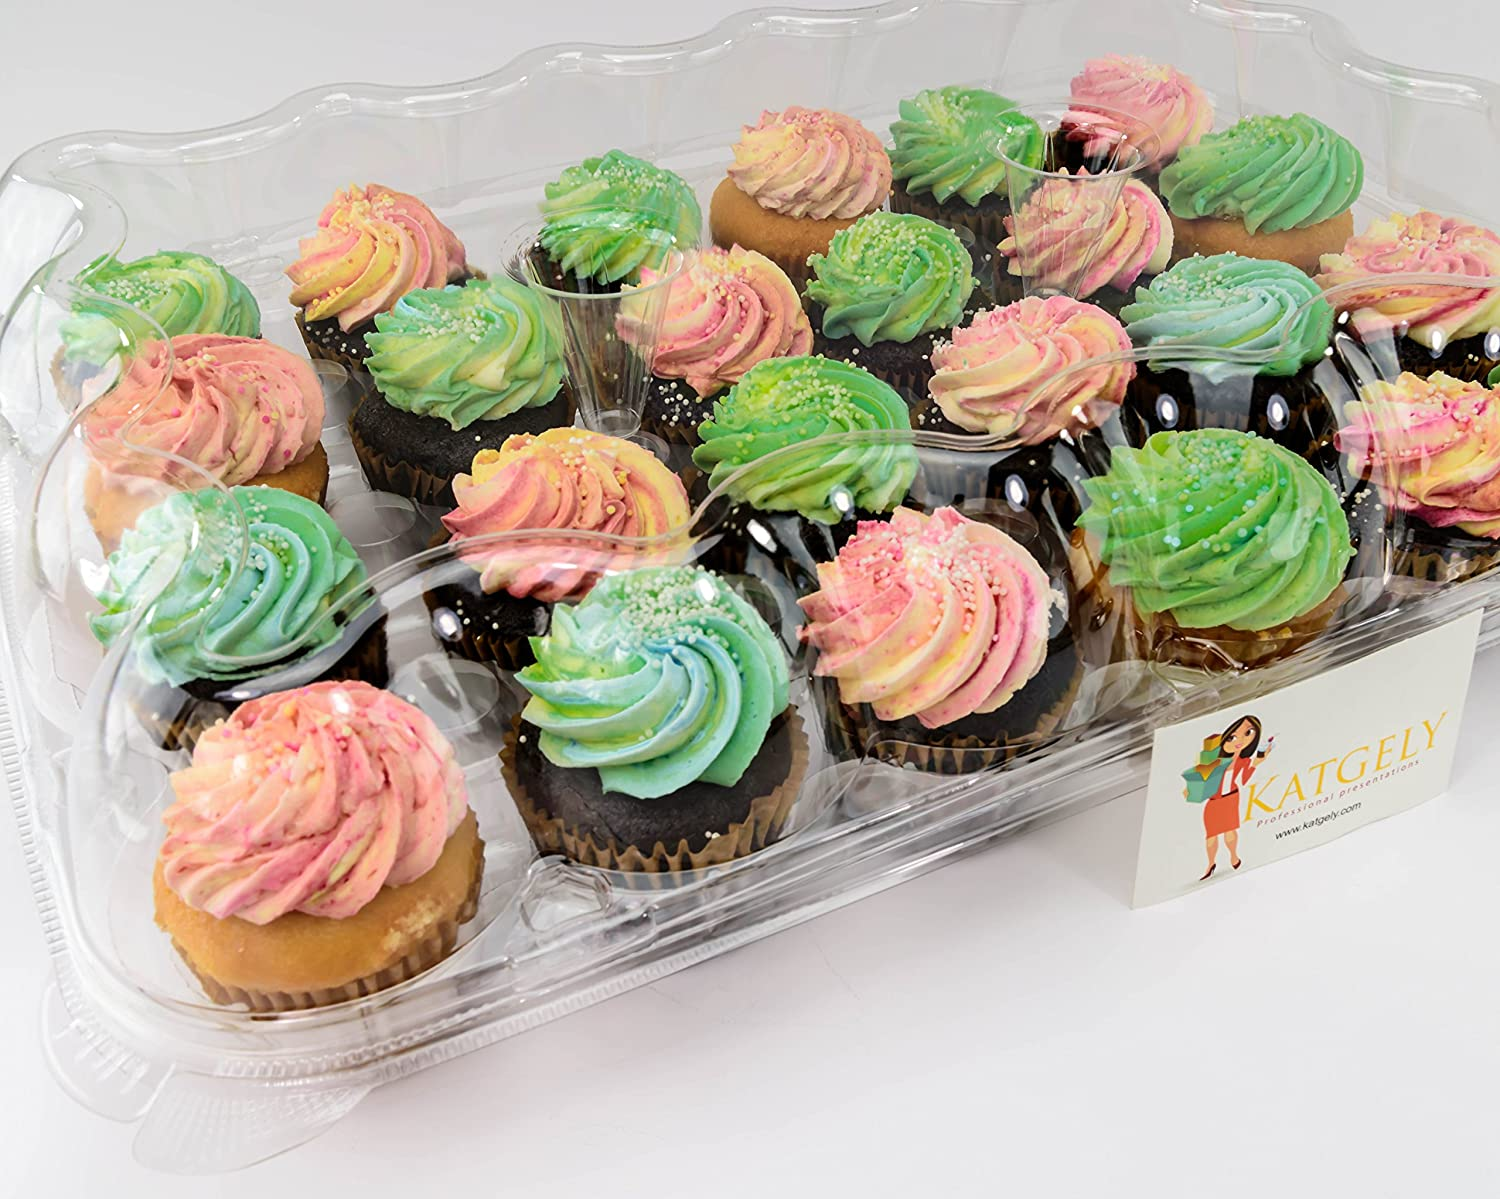 amazon com katgely cupcake boxes cupcake containers 24 pack